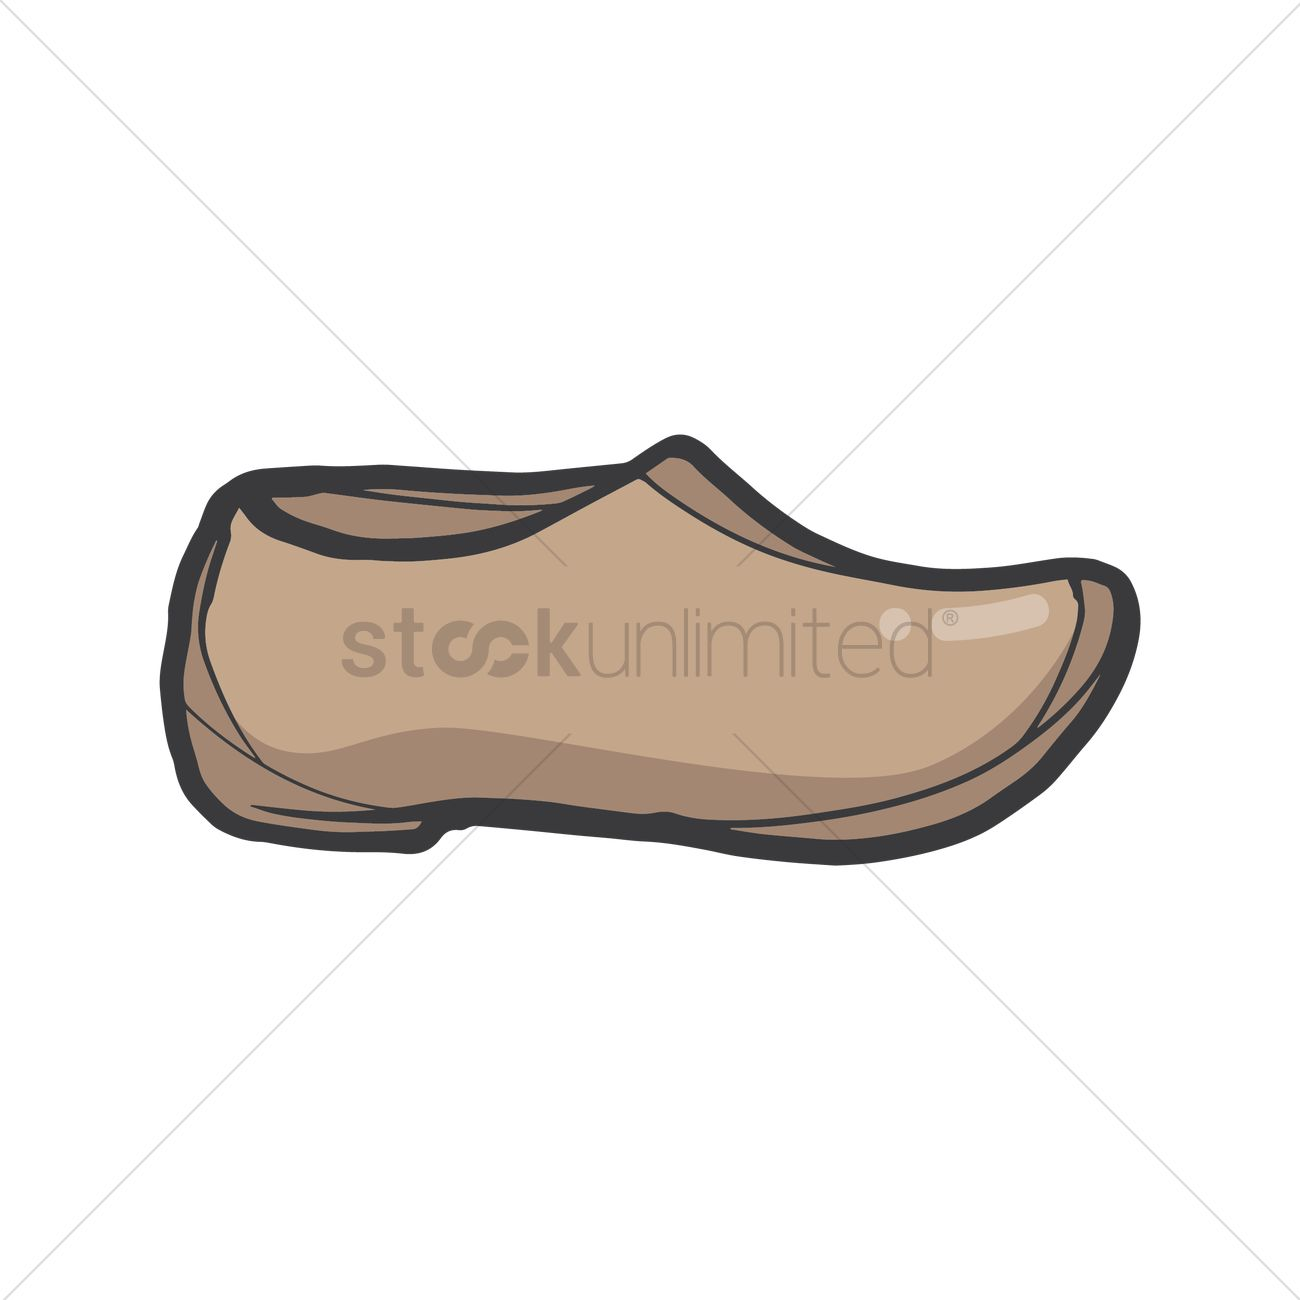 b3e1c9257fd7a Wooden clogs Vector Image - 2014475 | StockUnlimited